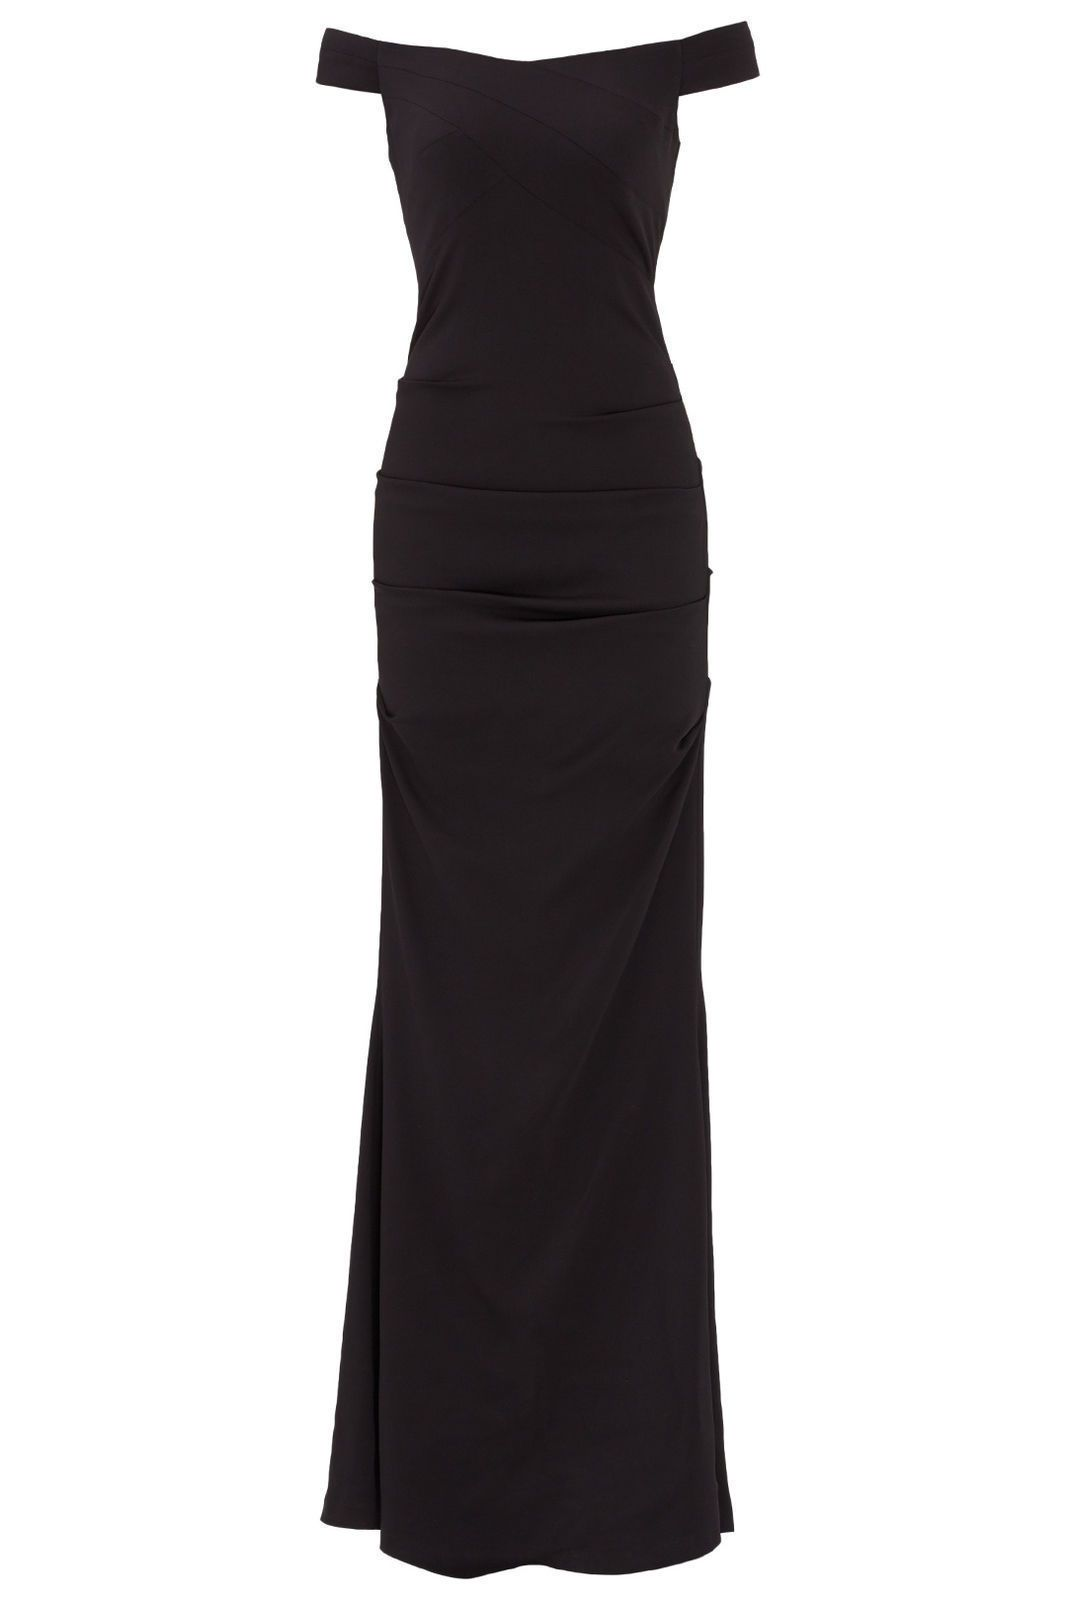 Awesome awesome nicole miller black offshoulder crepe womenus